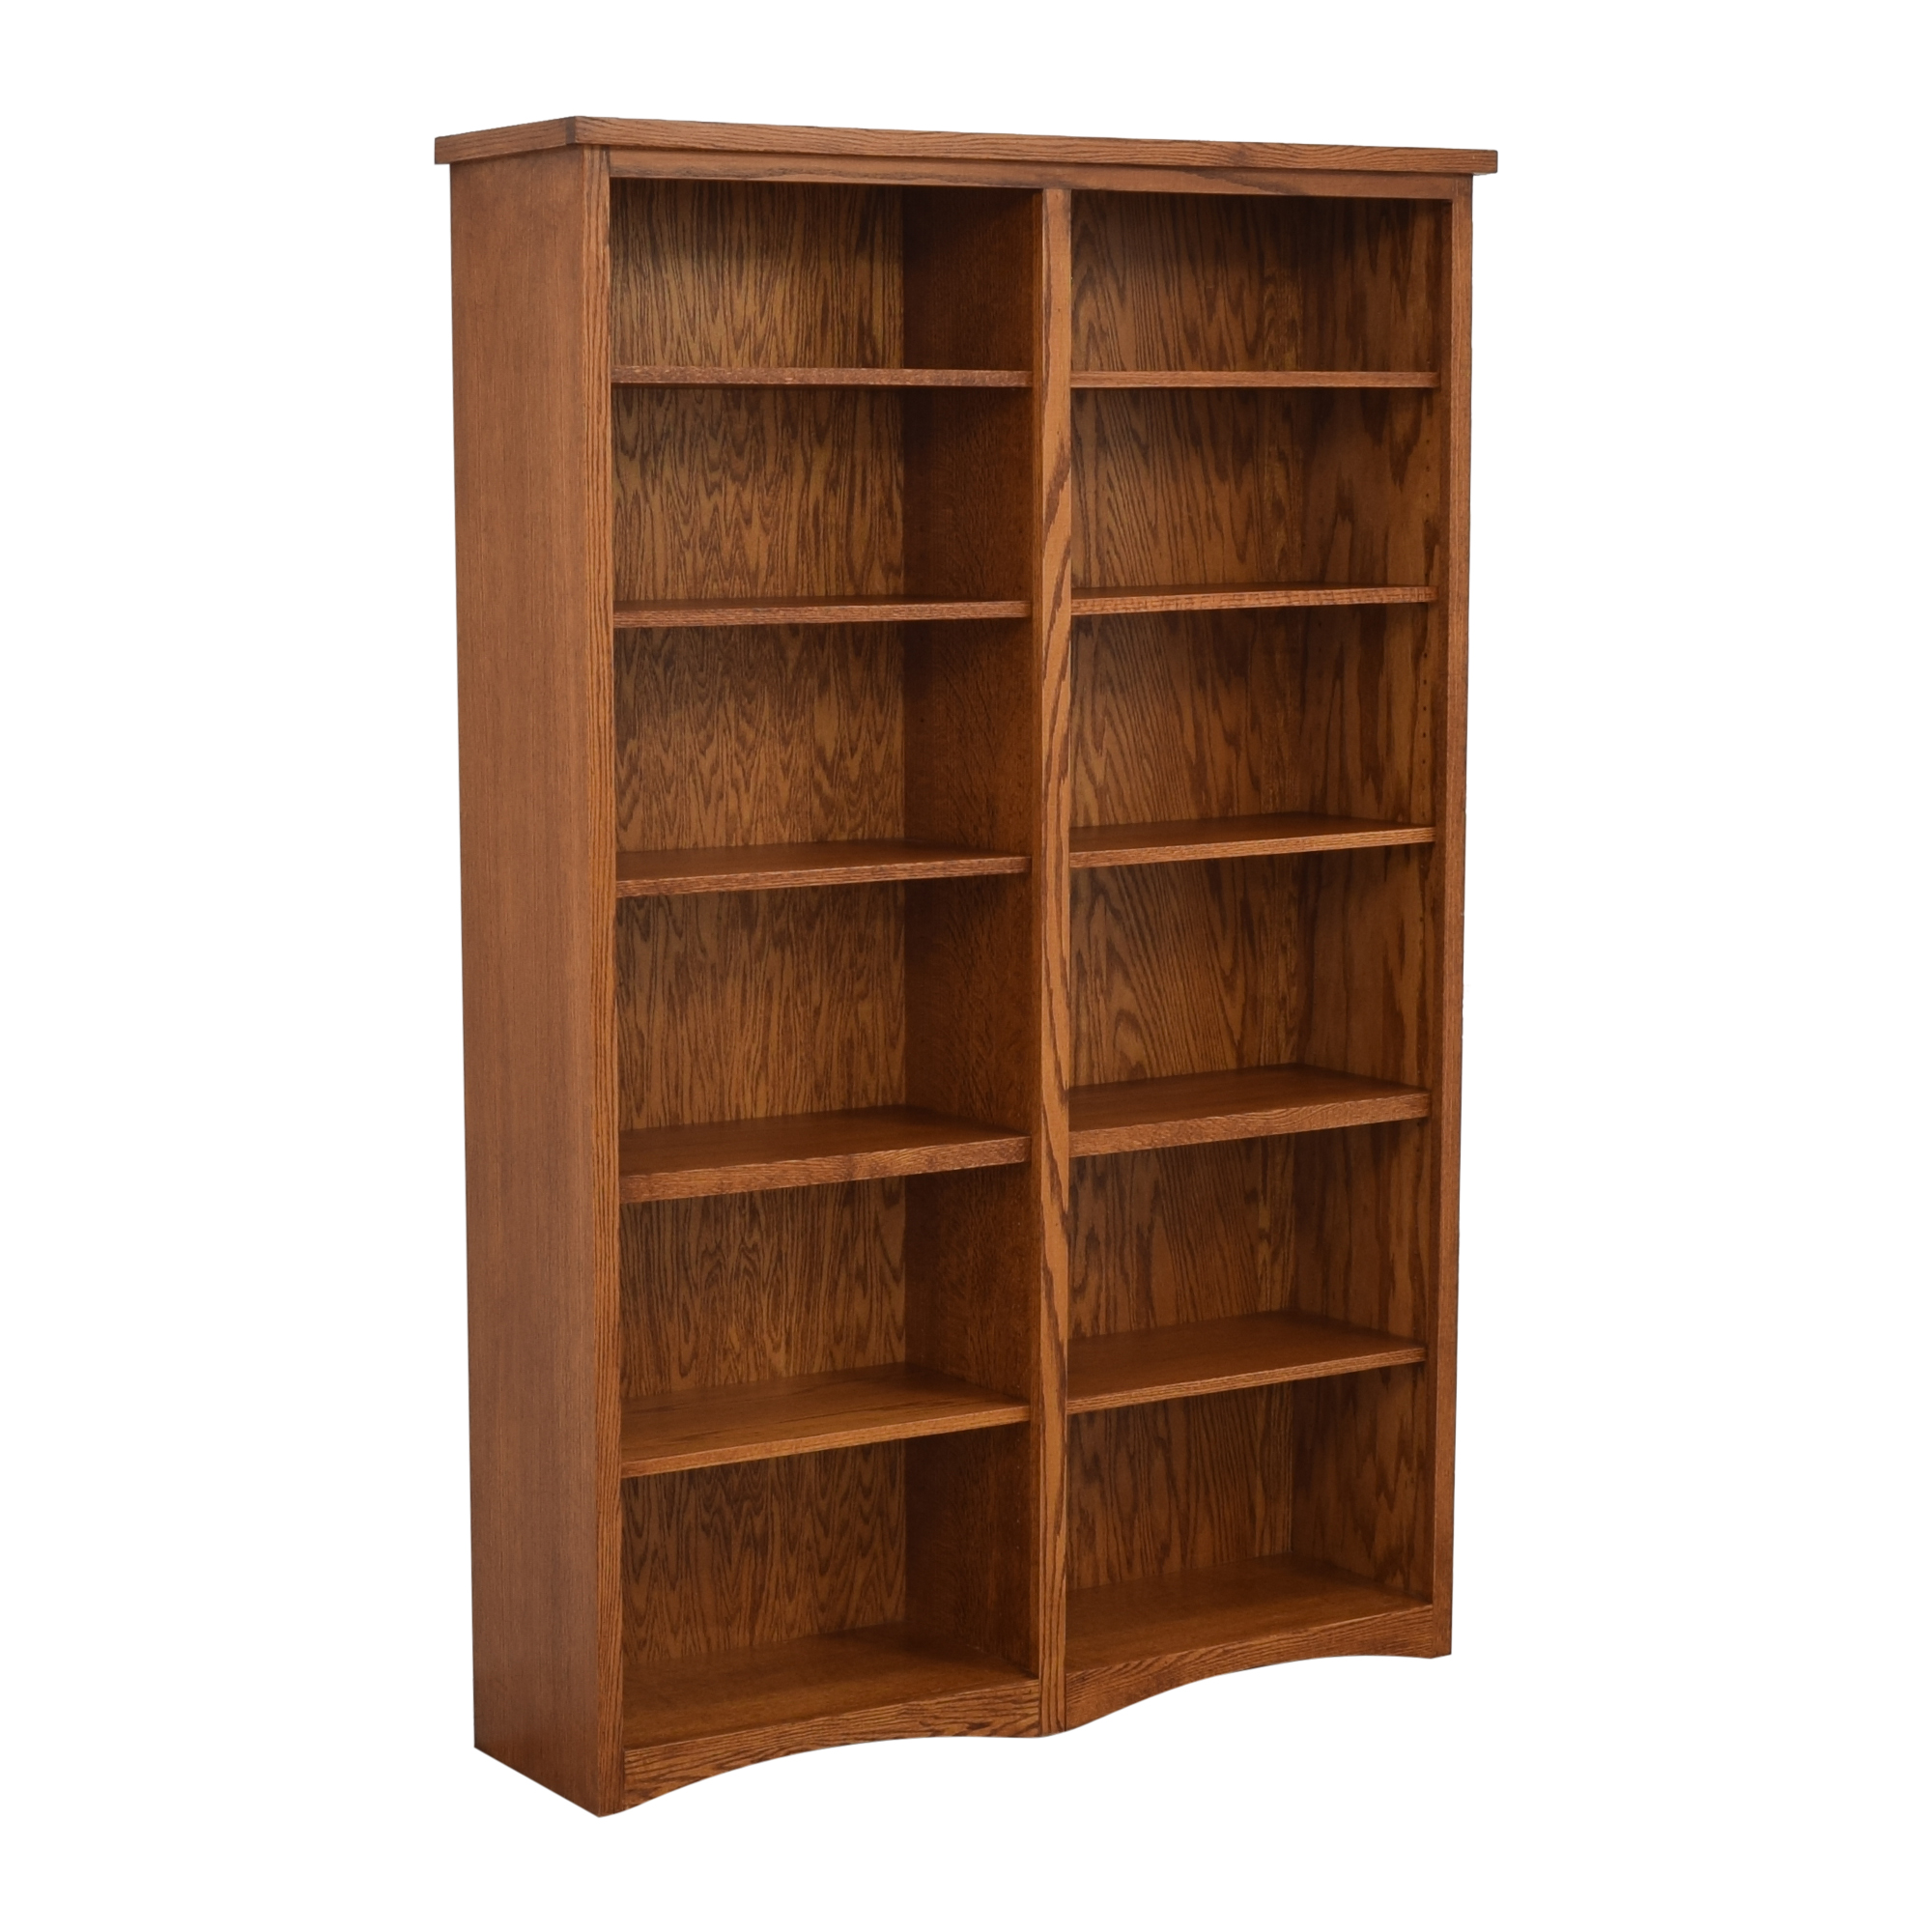 Oakcraft Oakcraft Mission Double Bookcase for sale